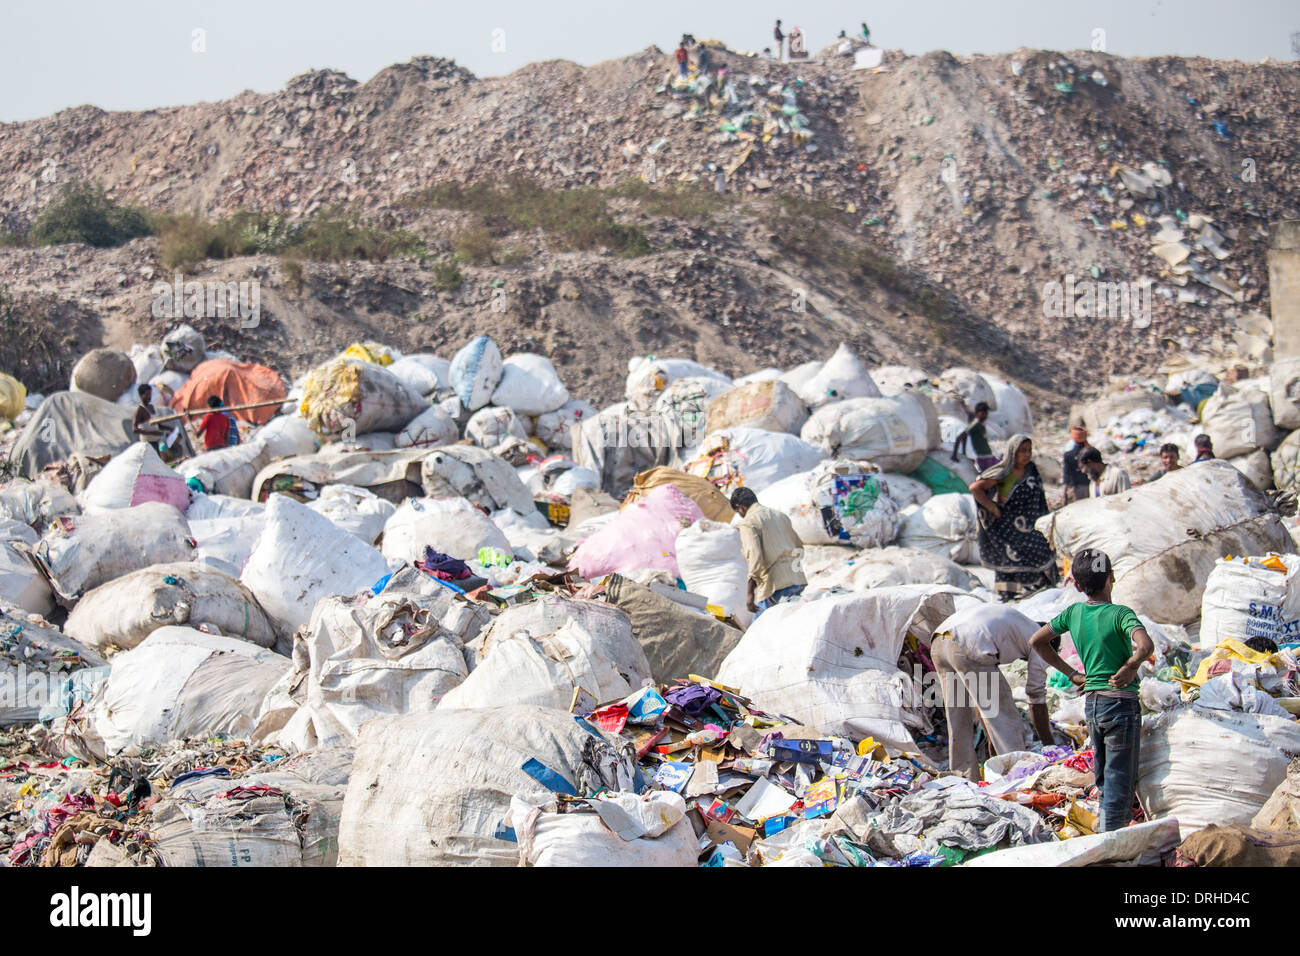 Pickers at a garbage dump in Delhi, India - Stock Image